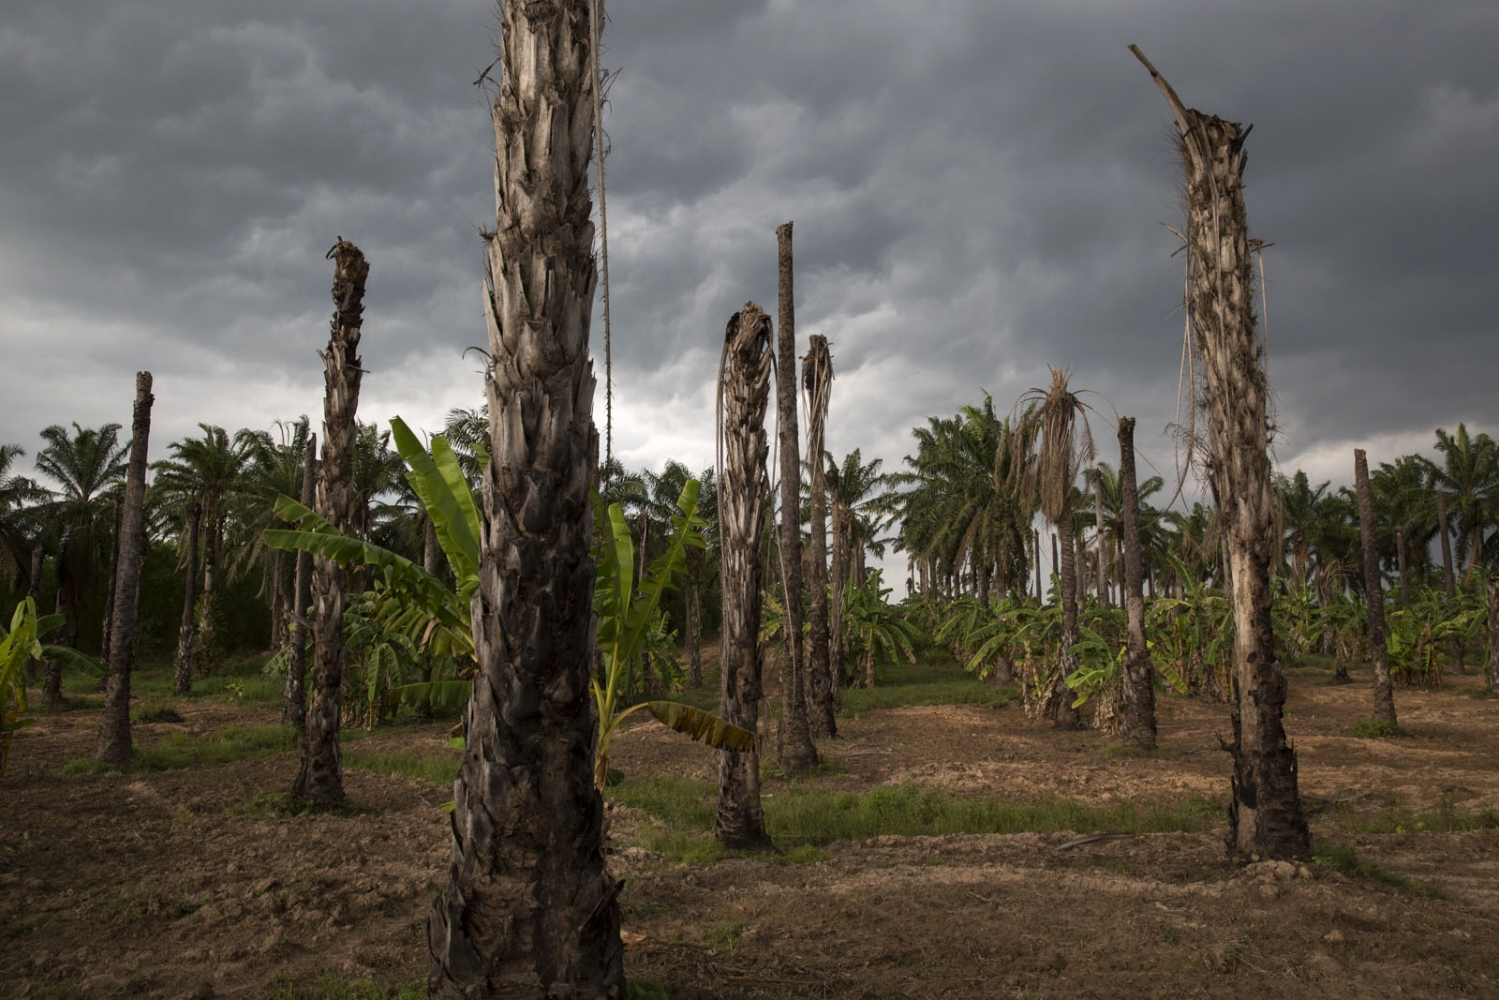 A storm moves over an area of dead palm oil trees that the villagers have started farming other produce. May 2016.